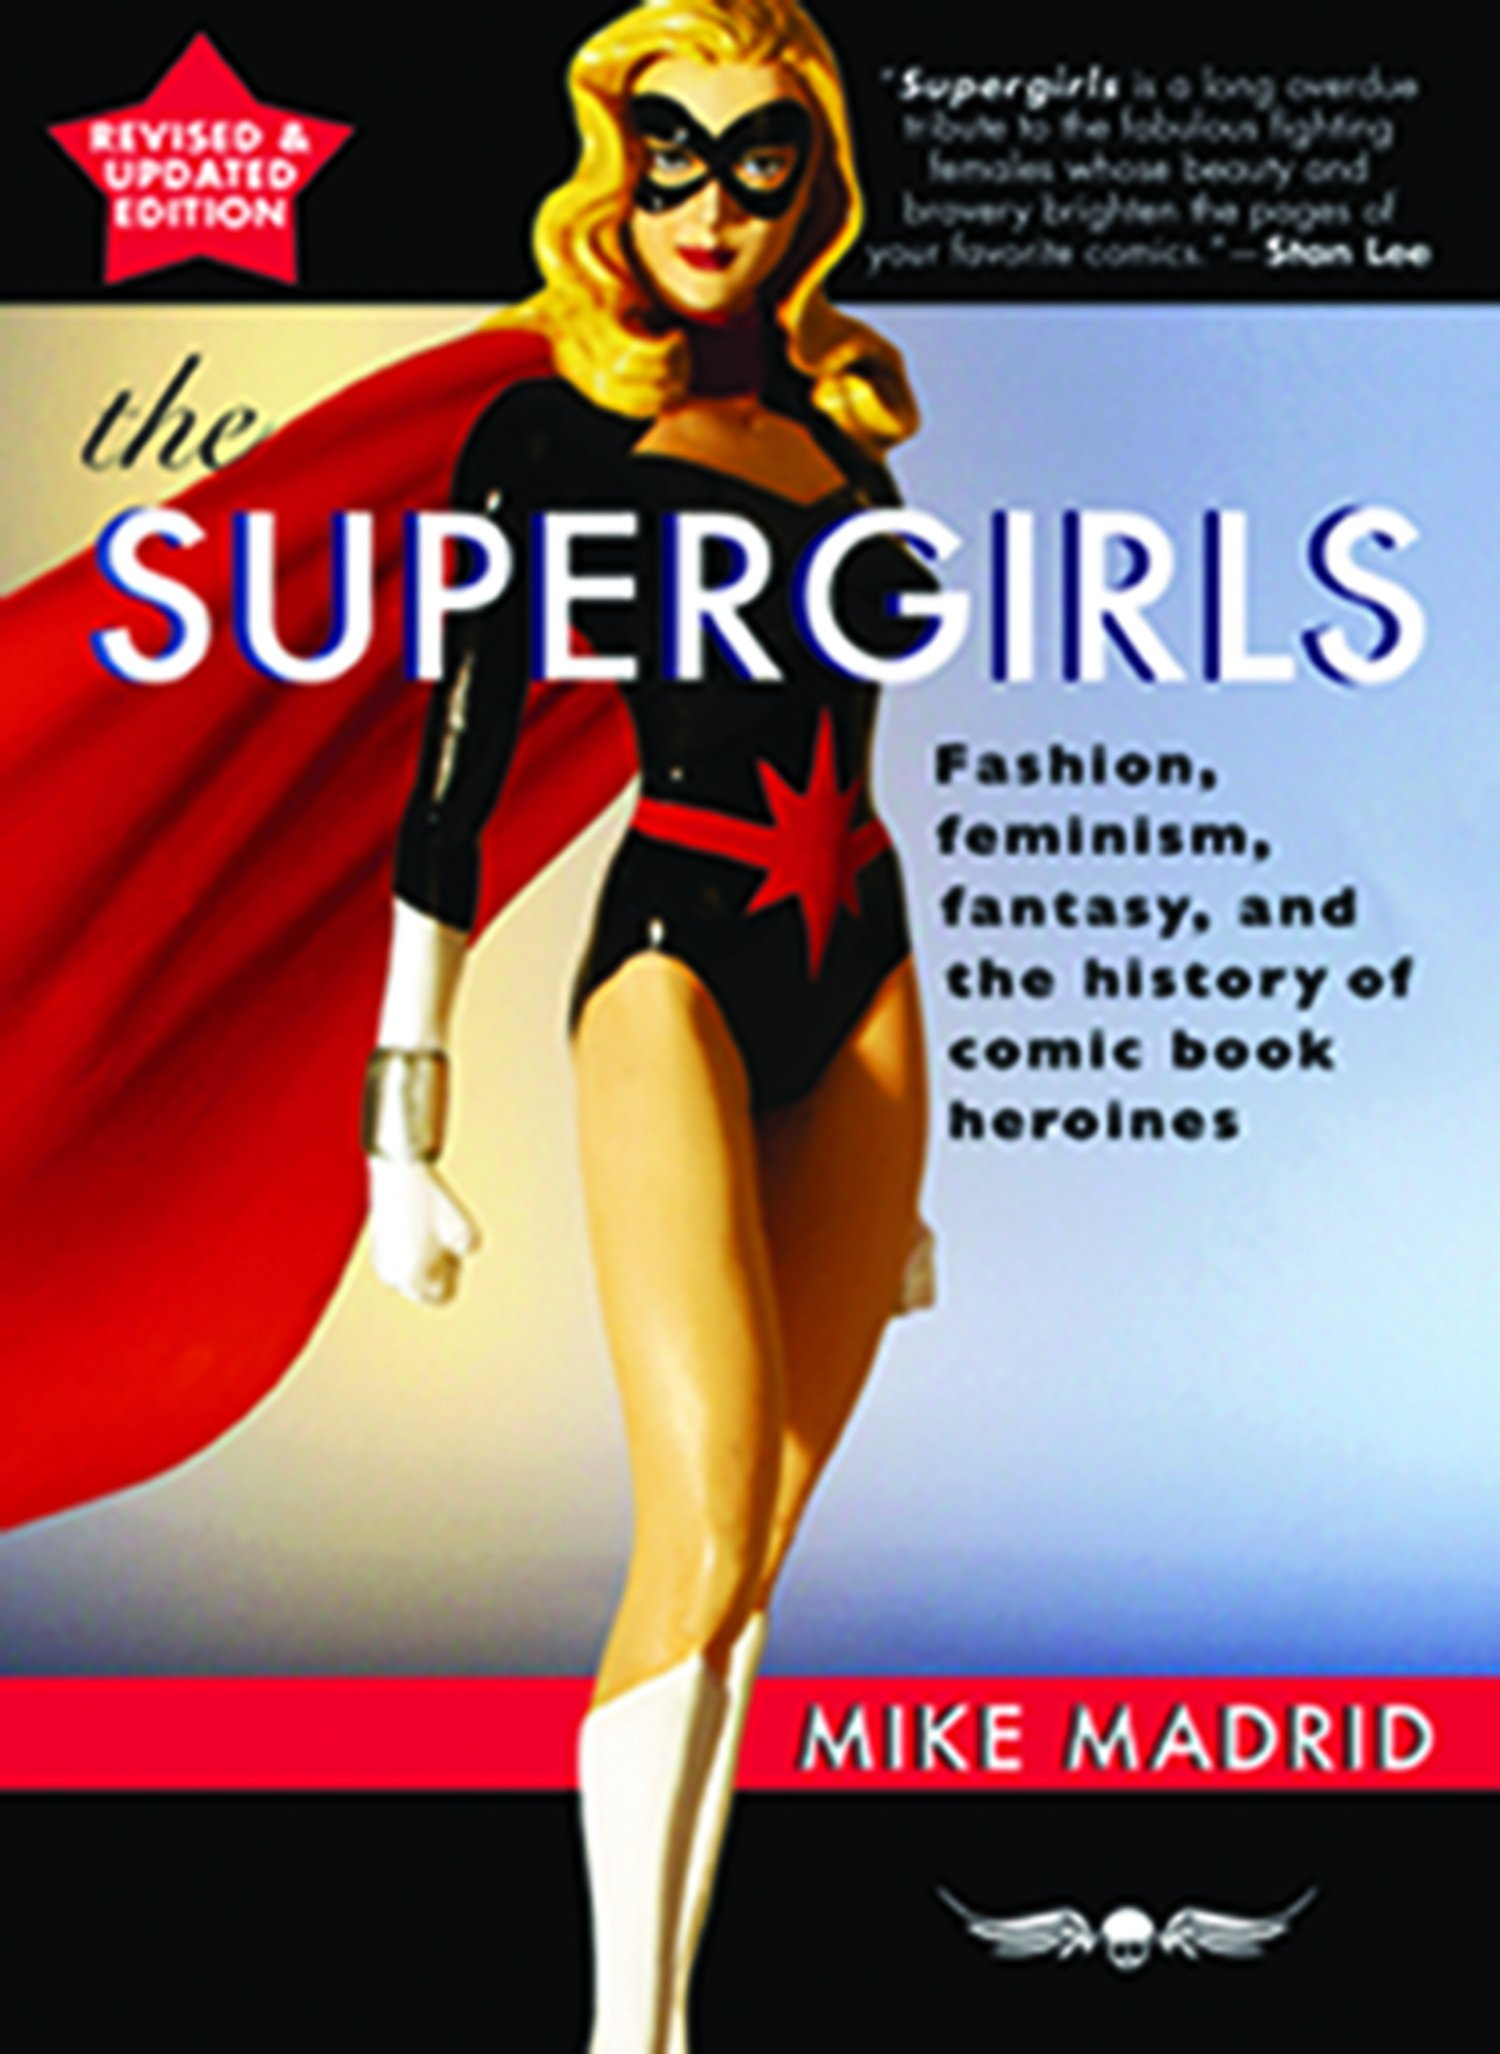 The Supergirls: Feminism, Fantasy, and the History of Comic Book Heroines (Revised and Updated) PDF